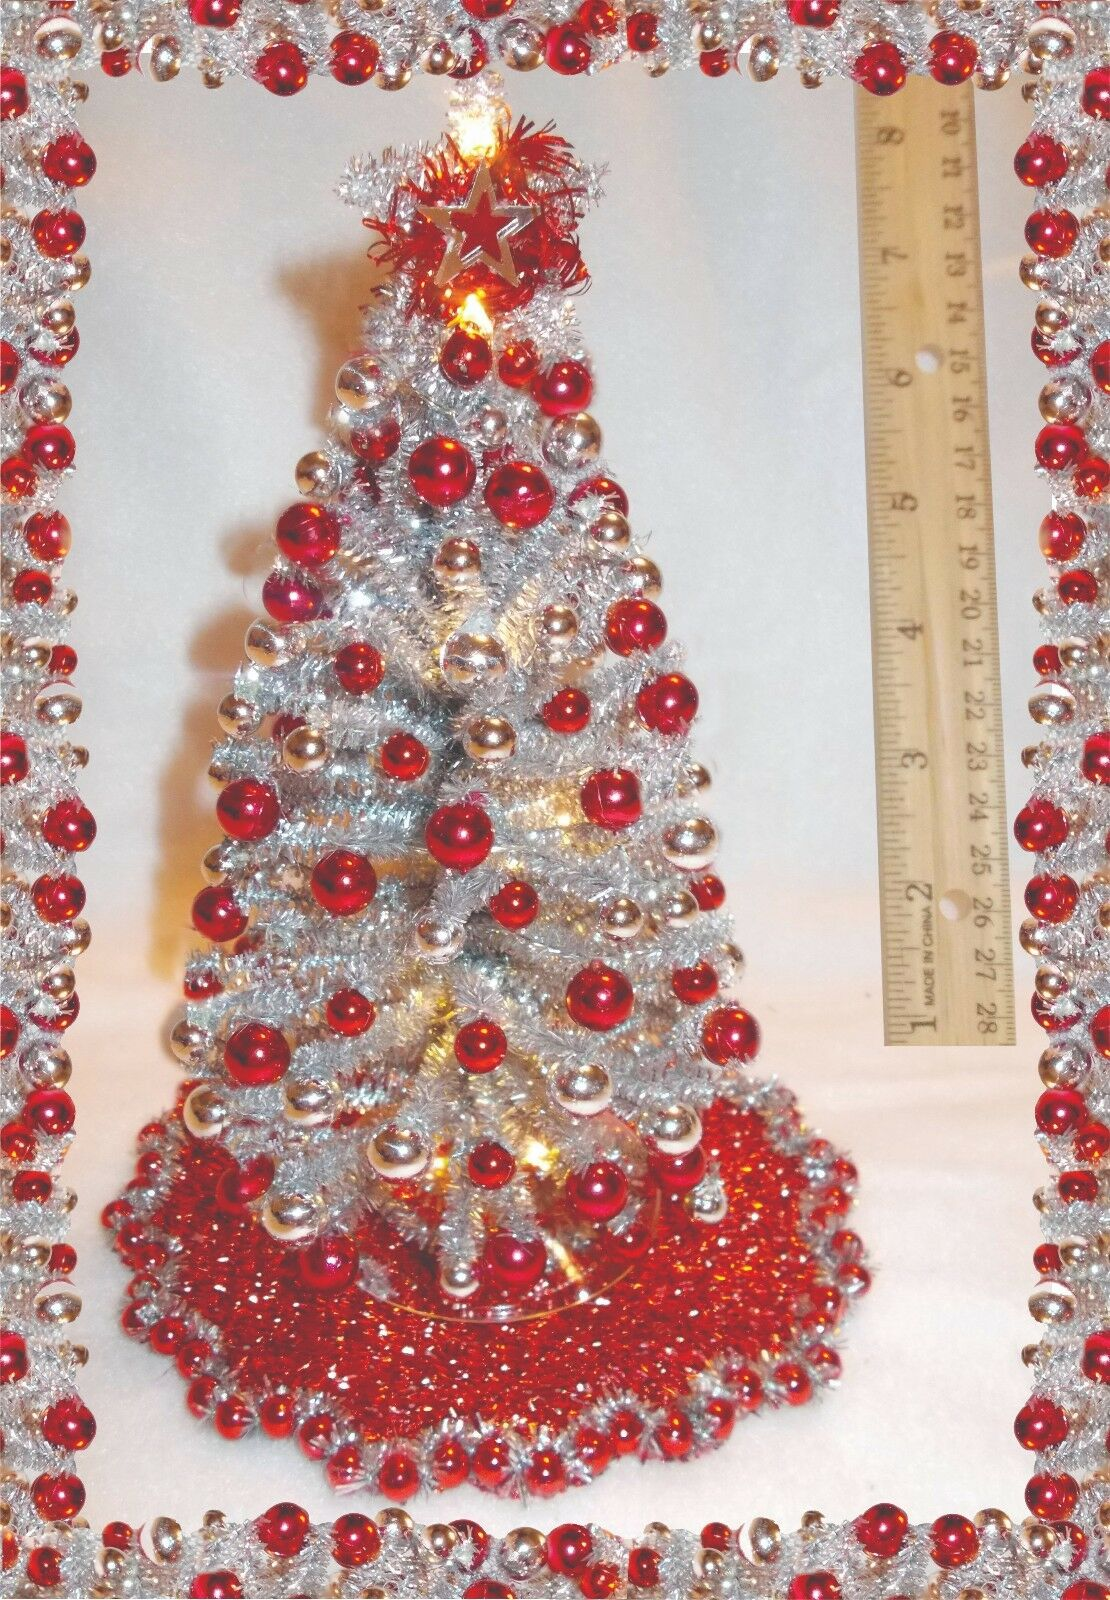 NEW 1 12 OOAK 8 LIGHTED Silber-rot DOLLHOUSE MINIATURE CHRISTMAS TREE +ORNASieTS